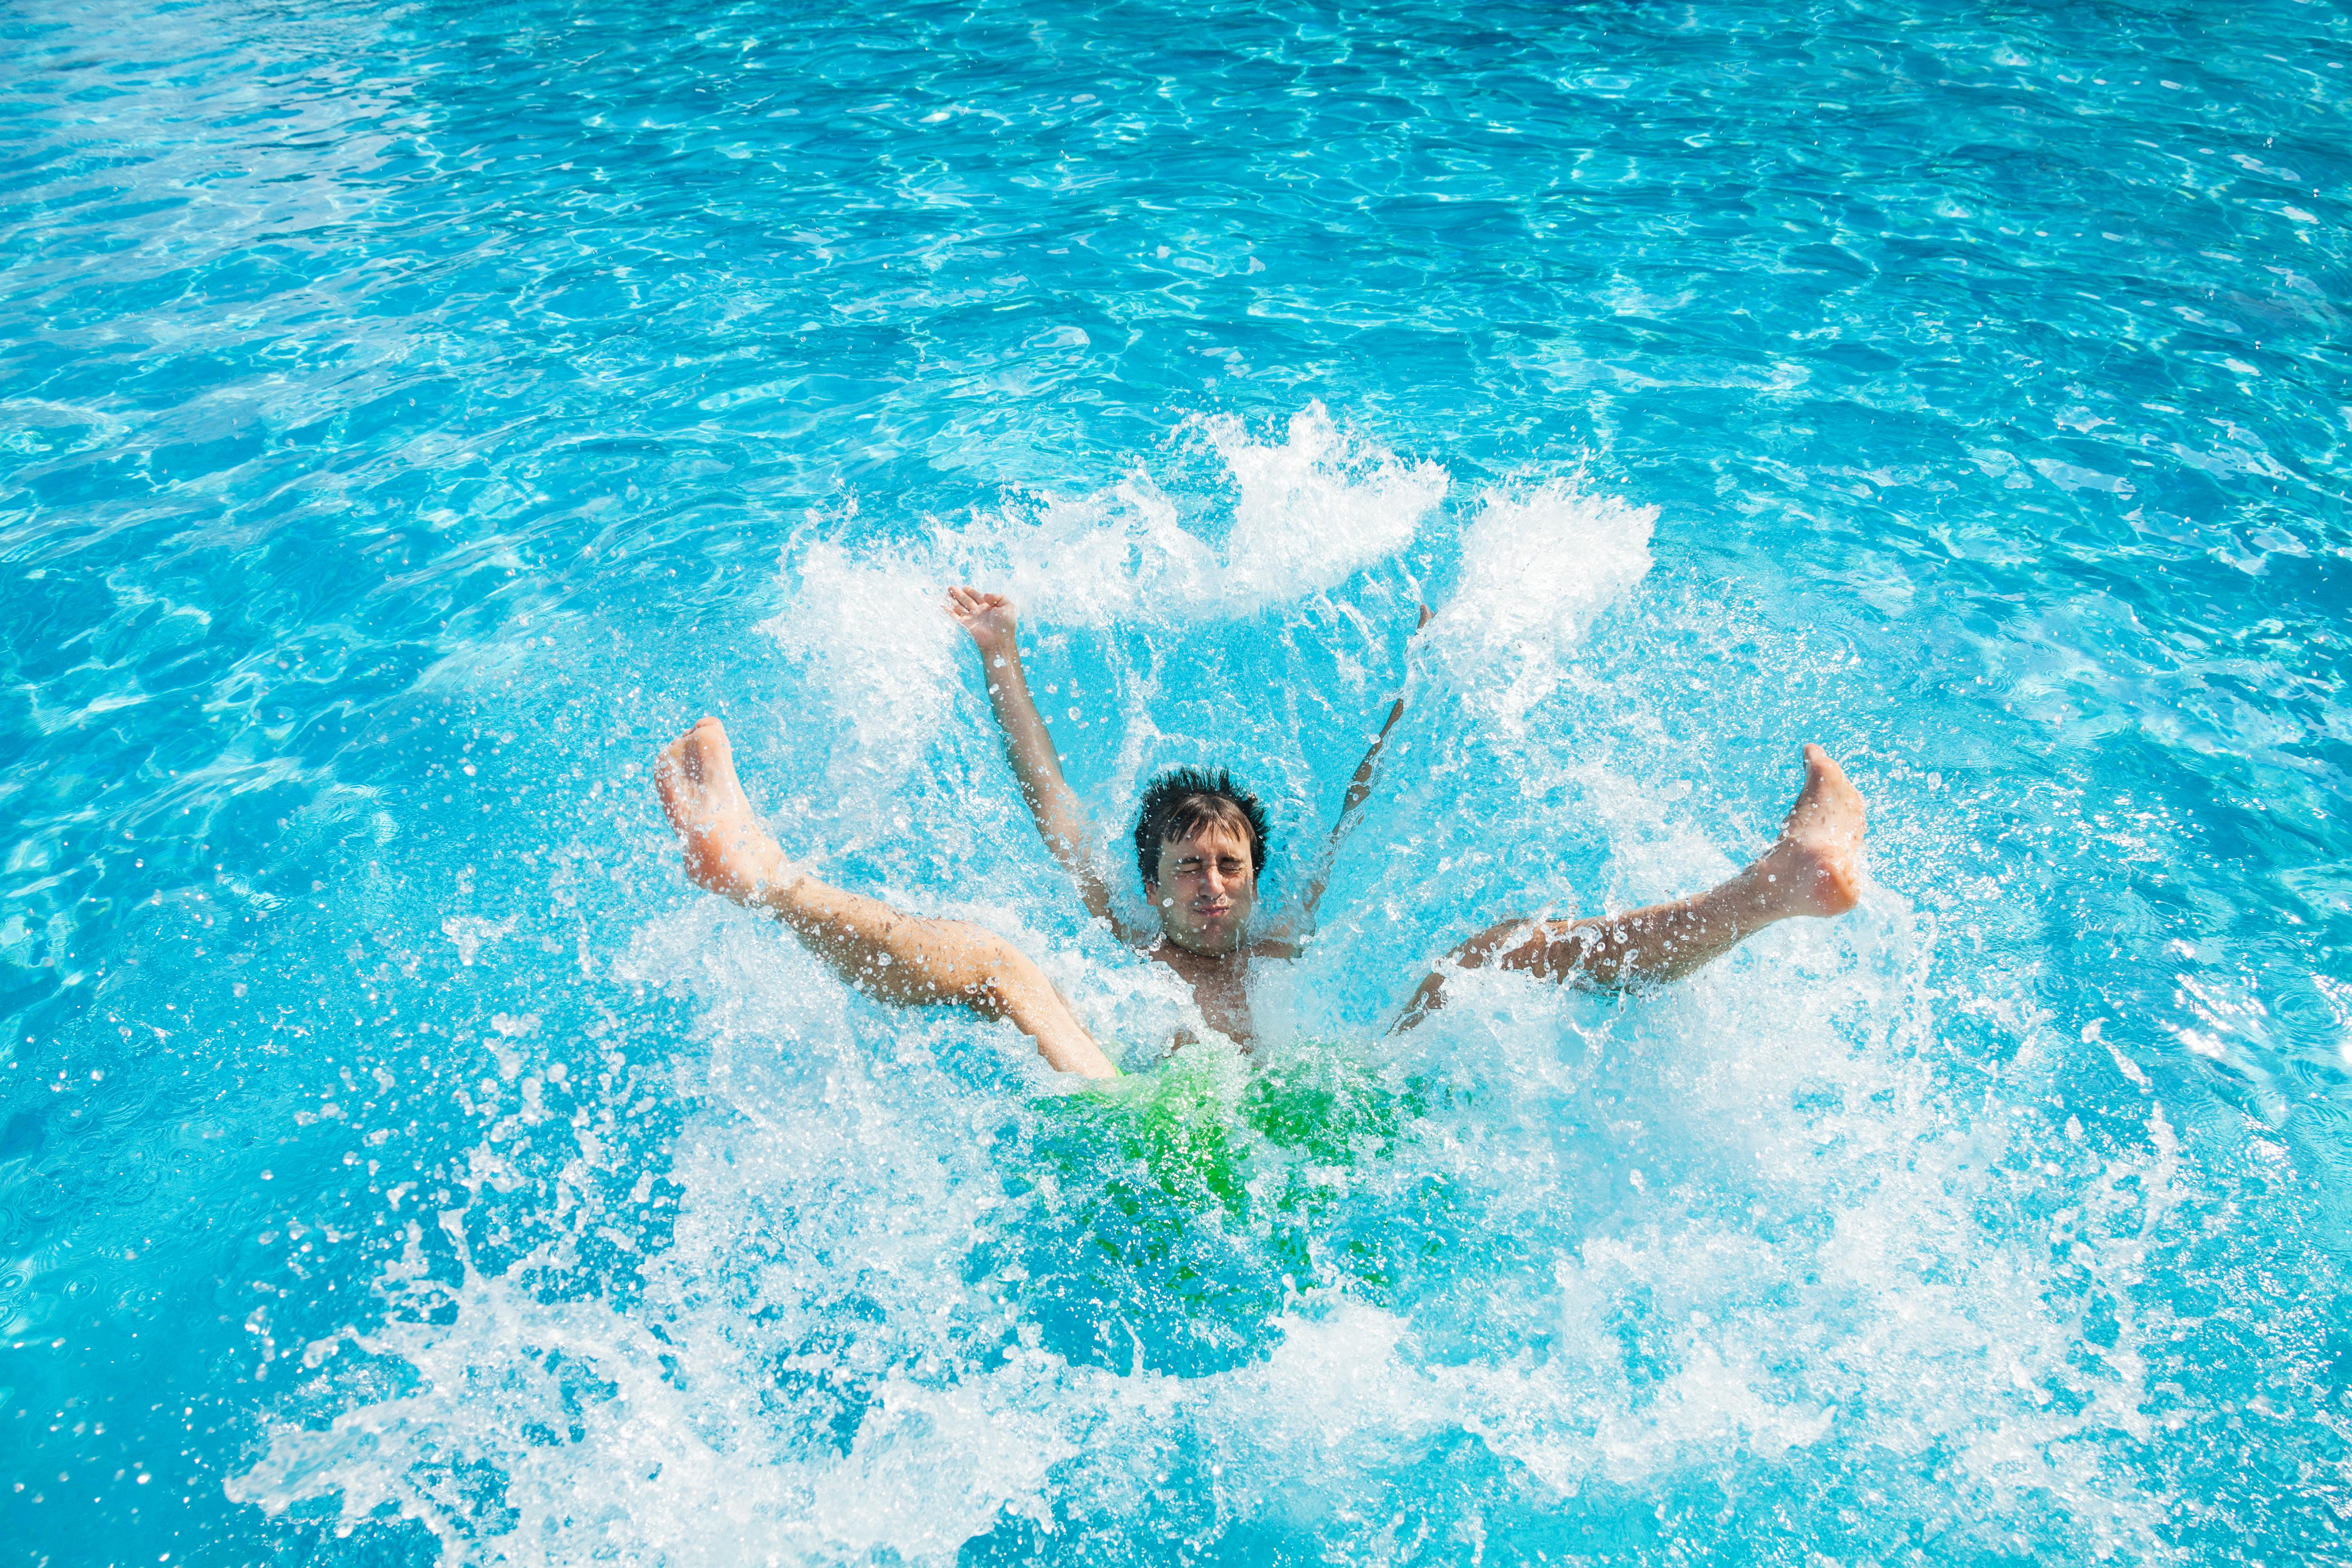 Insurance Companies and Summer Hours – Should it Be a Thing in Your Business? on avanteinsurance.com